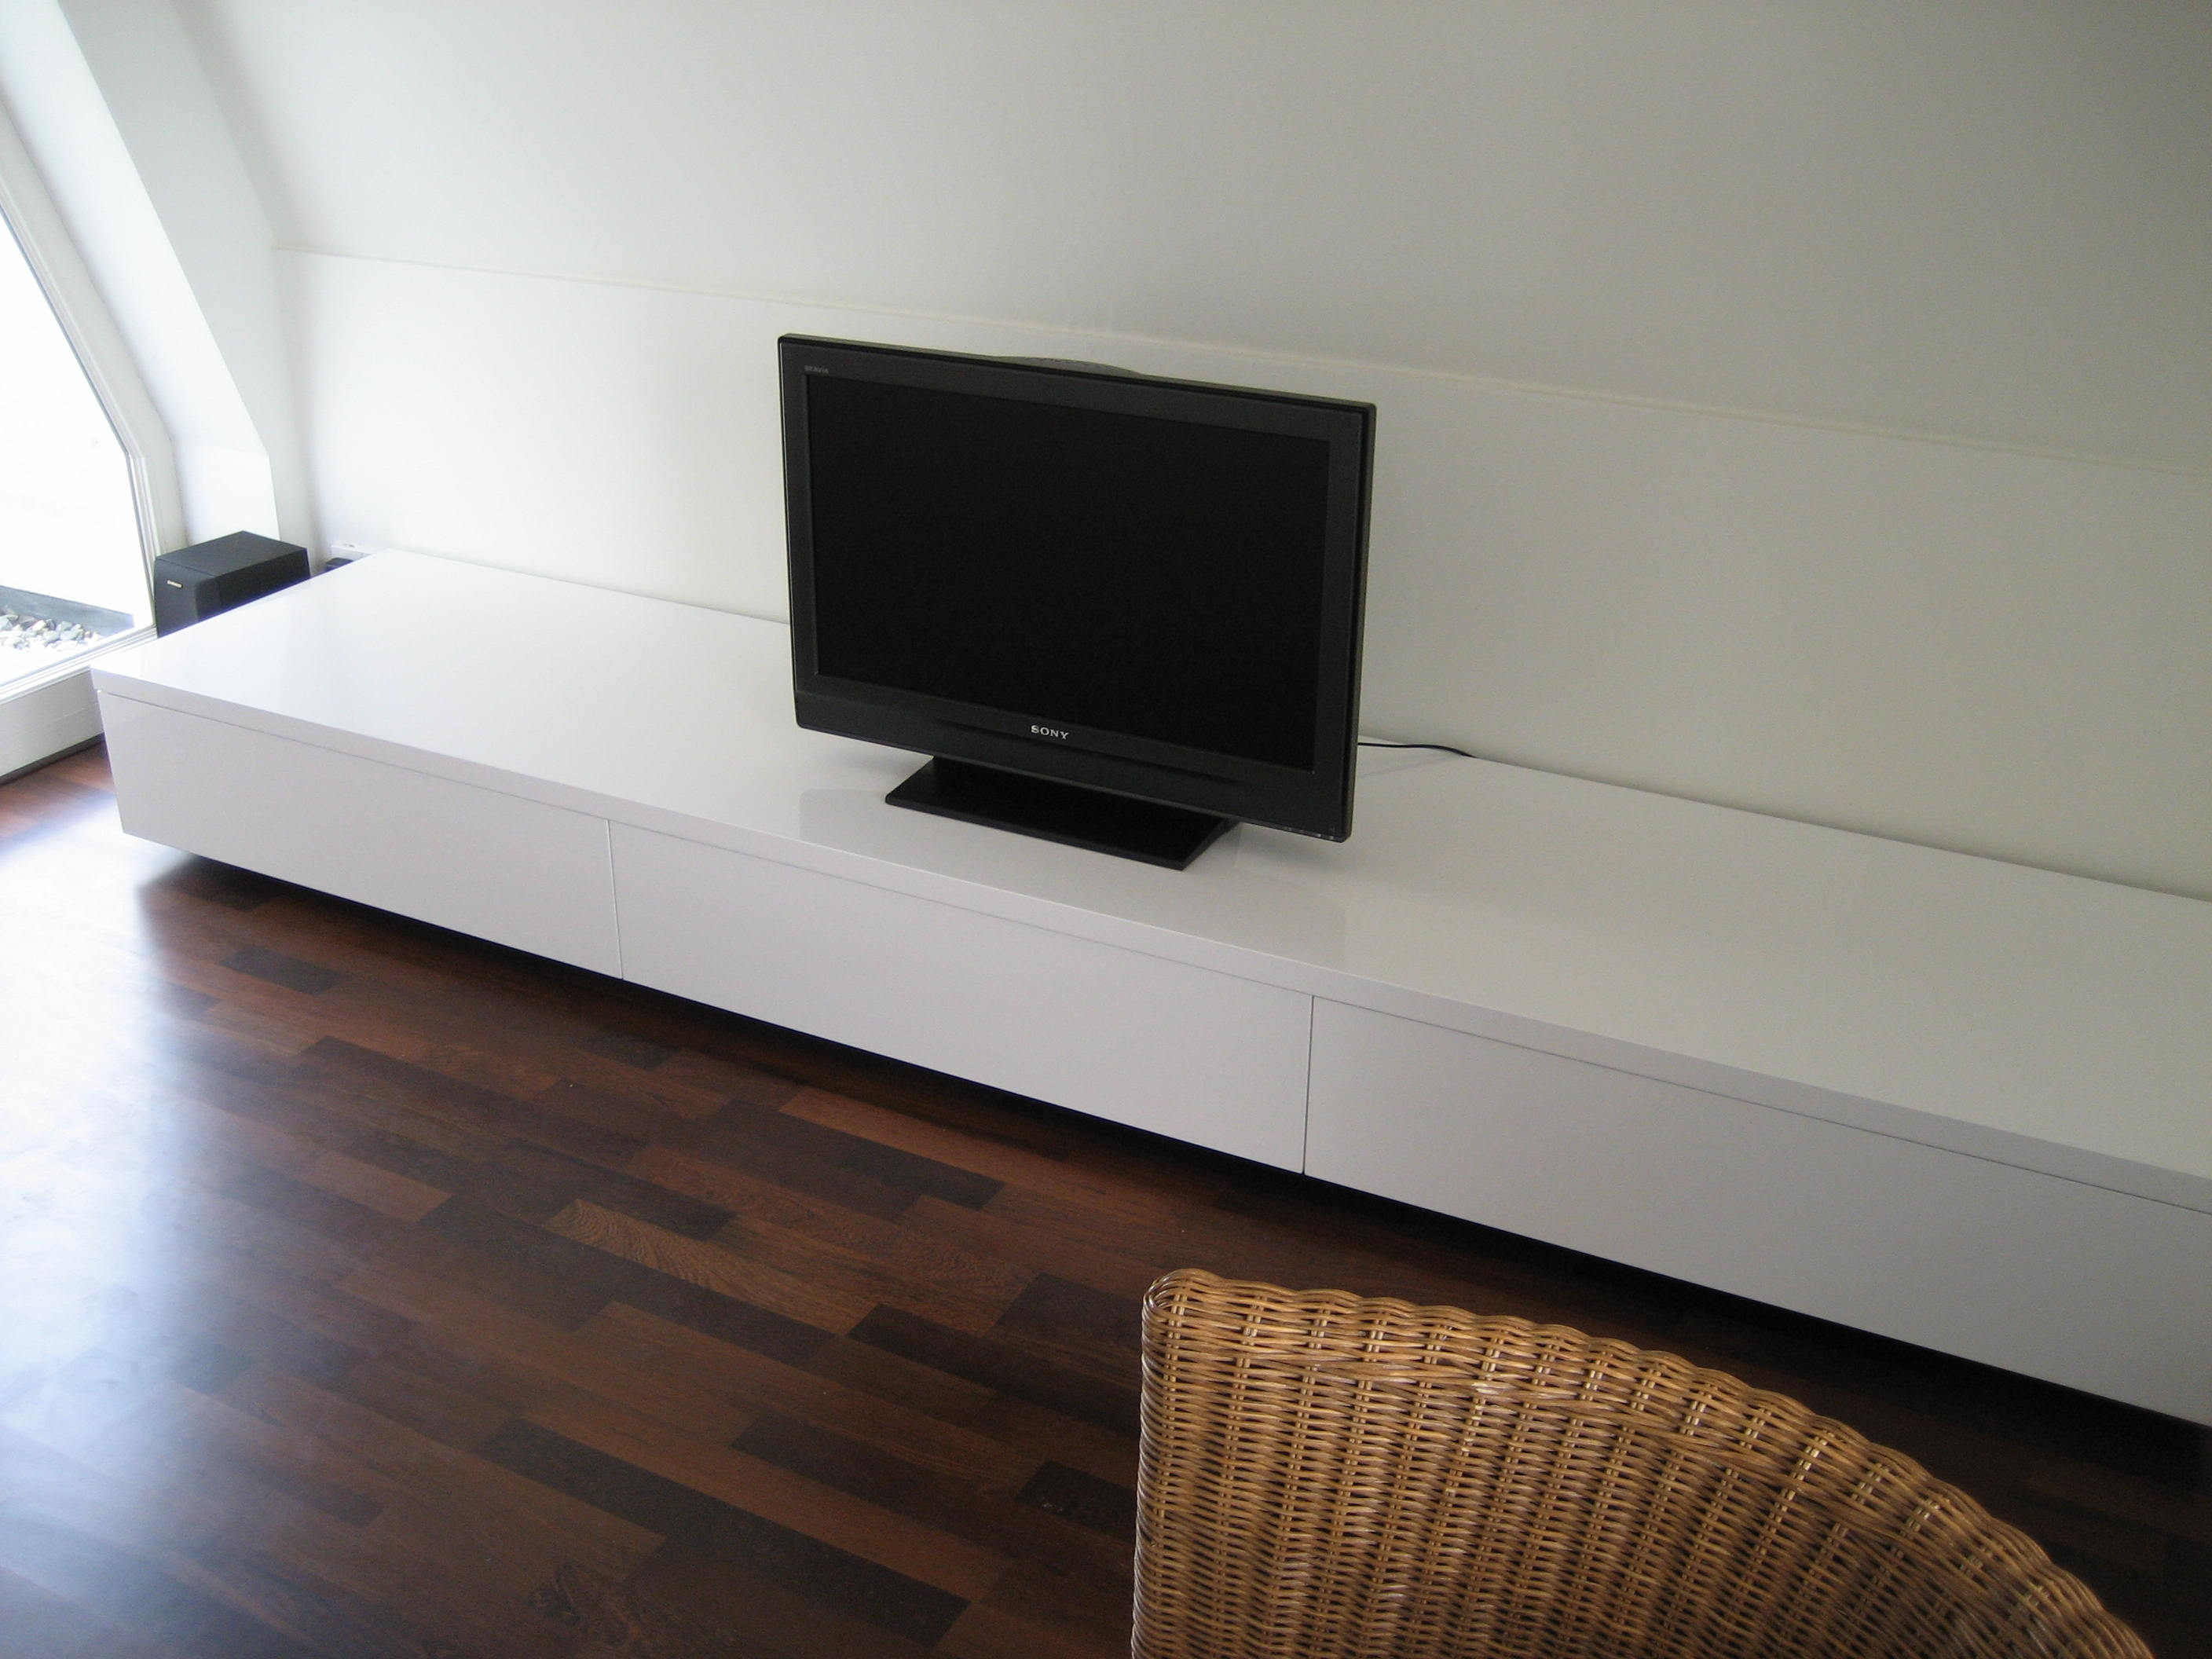 lowboard infinity 300 tv meubel meubels. Black Bedroom Furniture Sets. Home Design Ideas